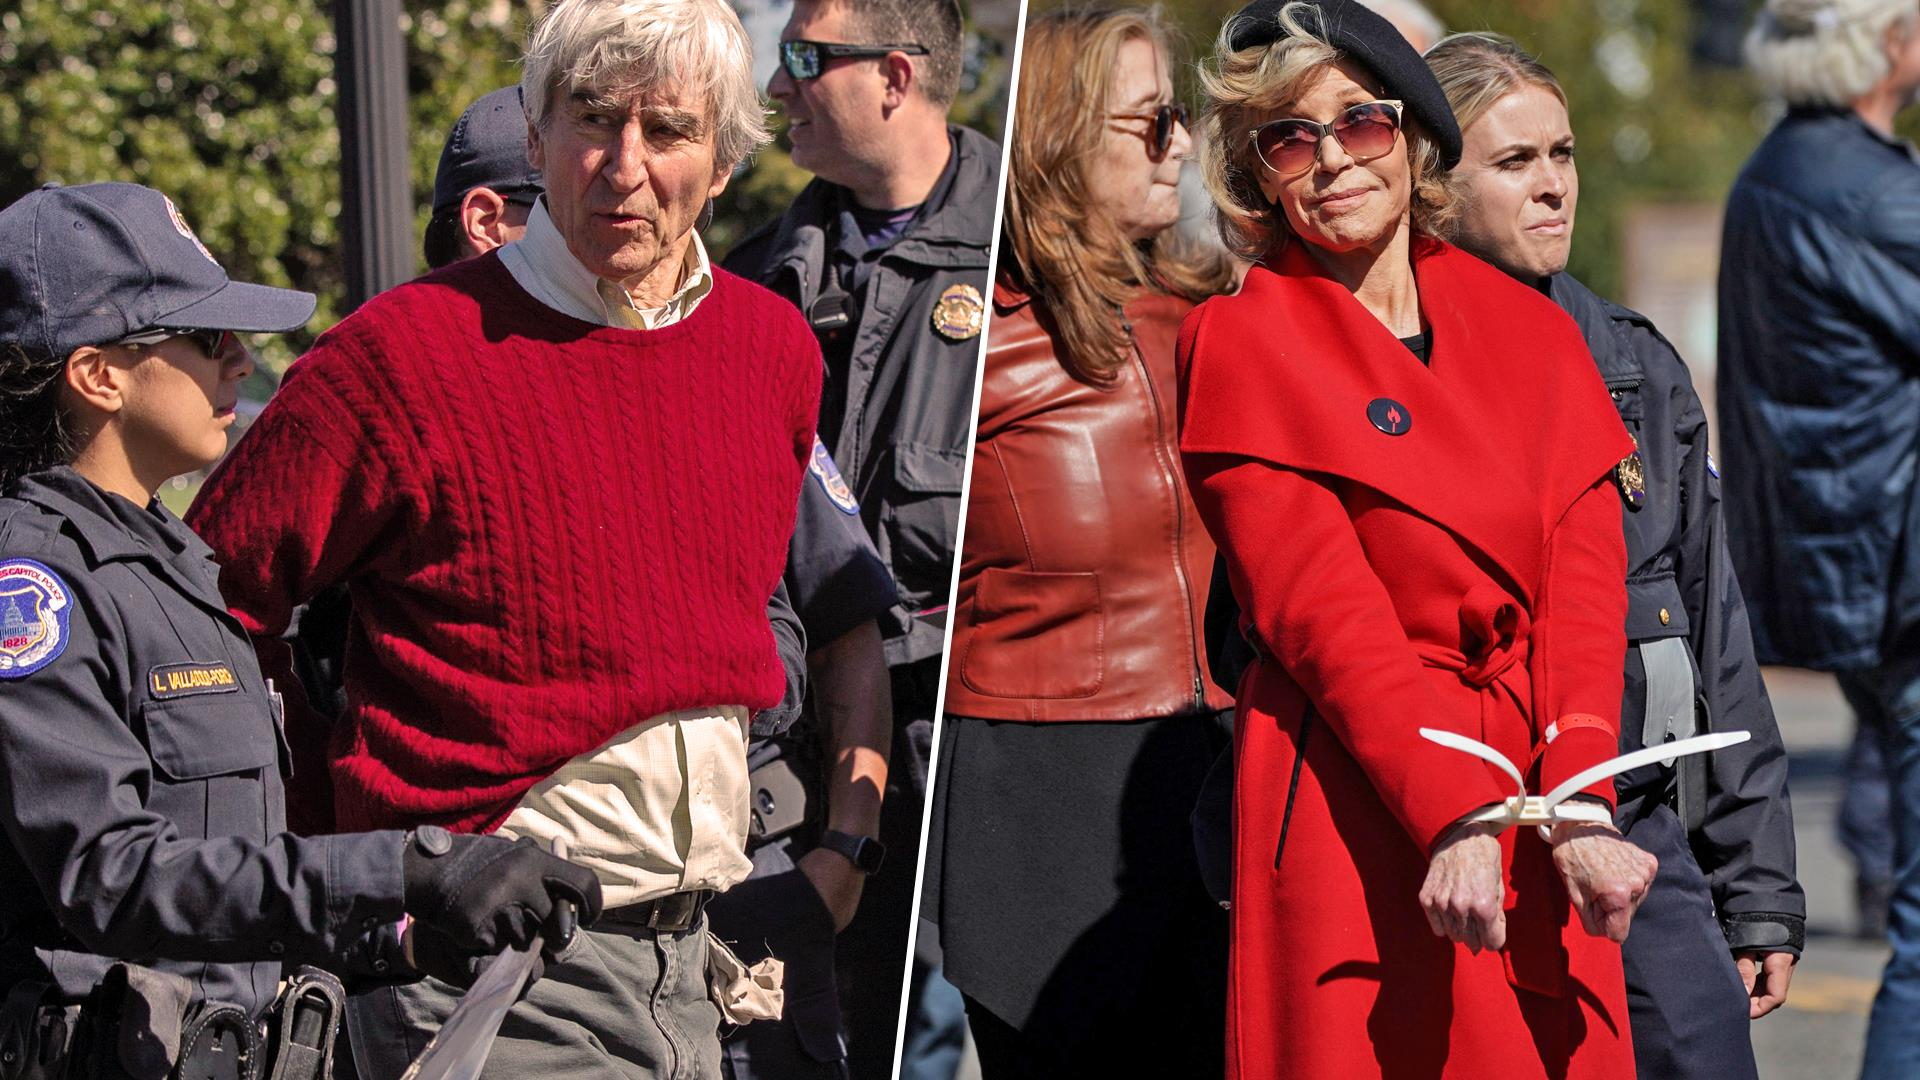 Jane Fonda, Sam Waterston arrested at U.S. Capitol climate protest